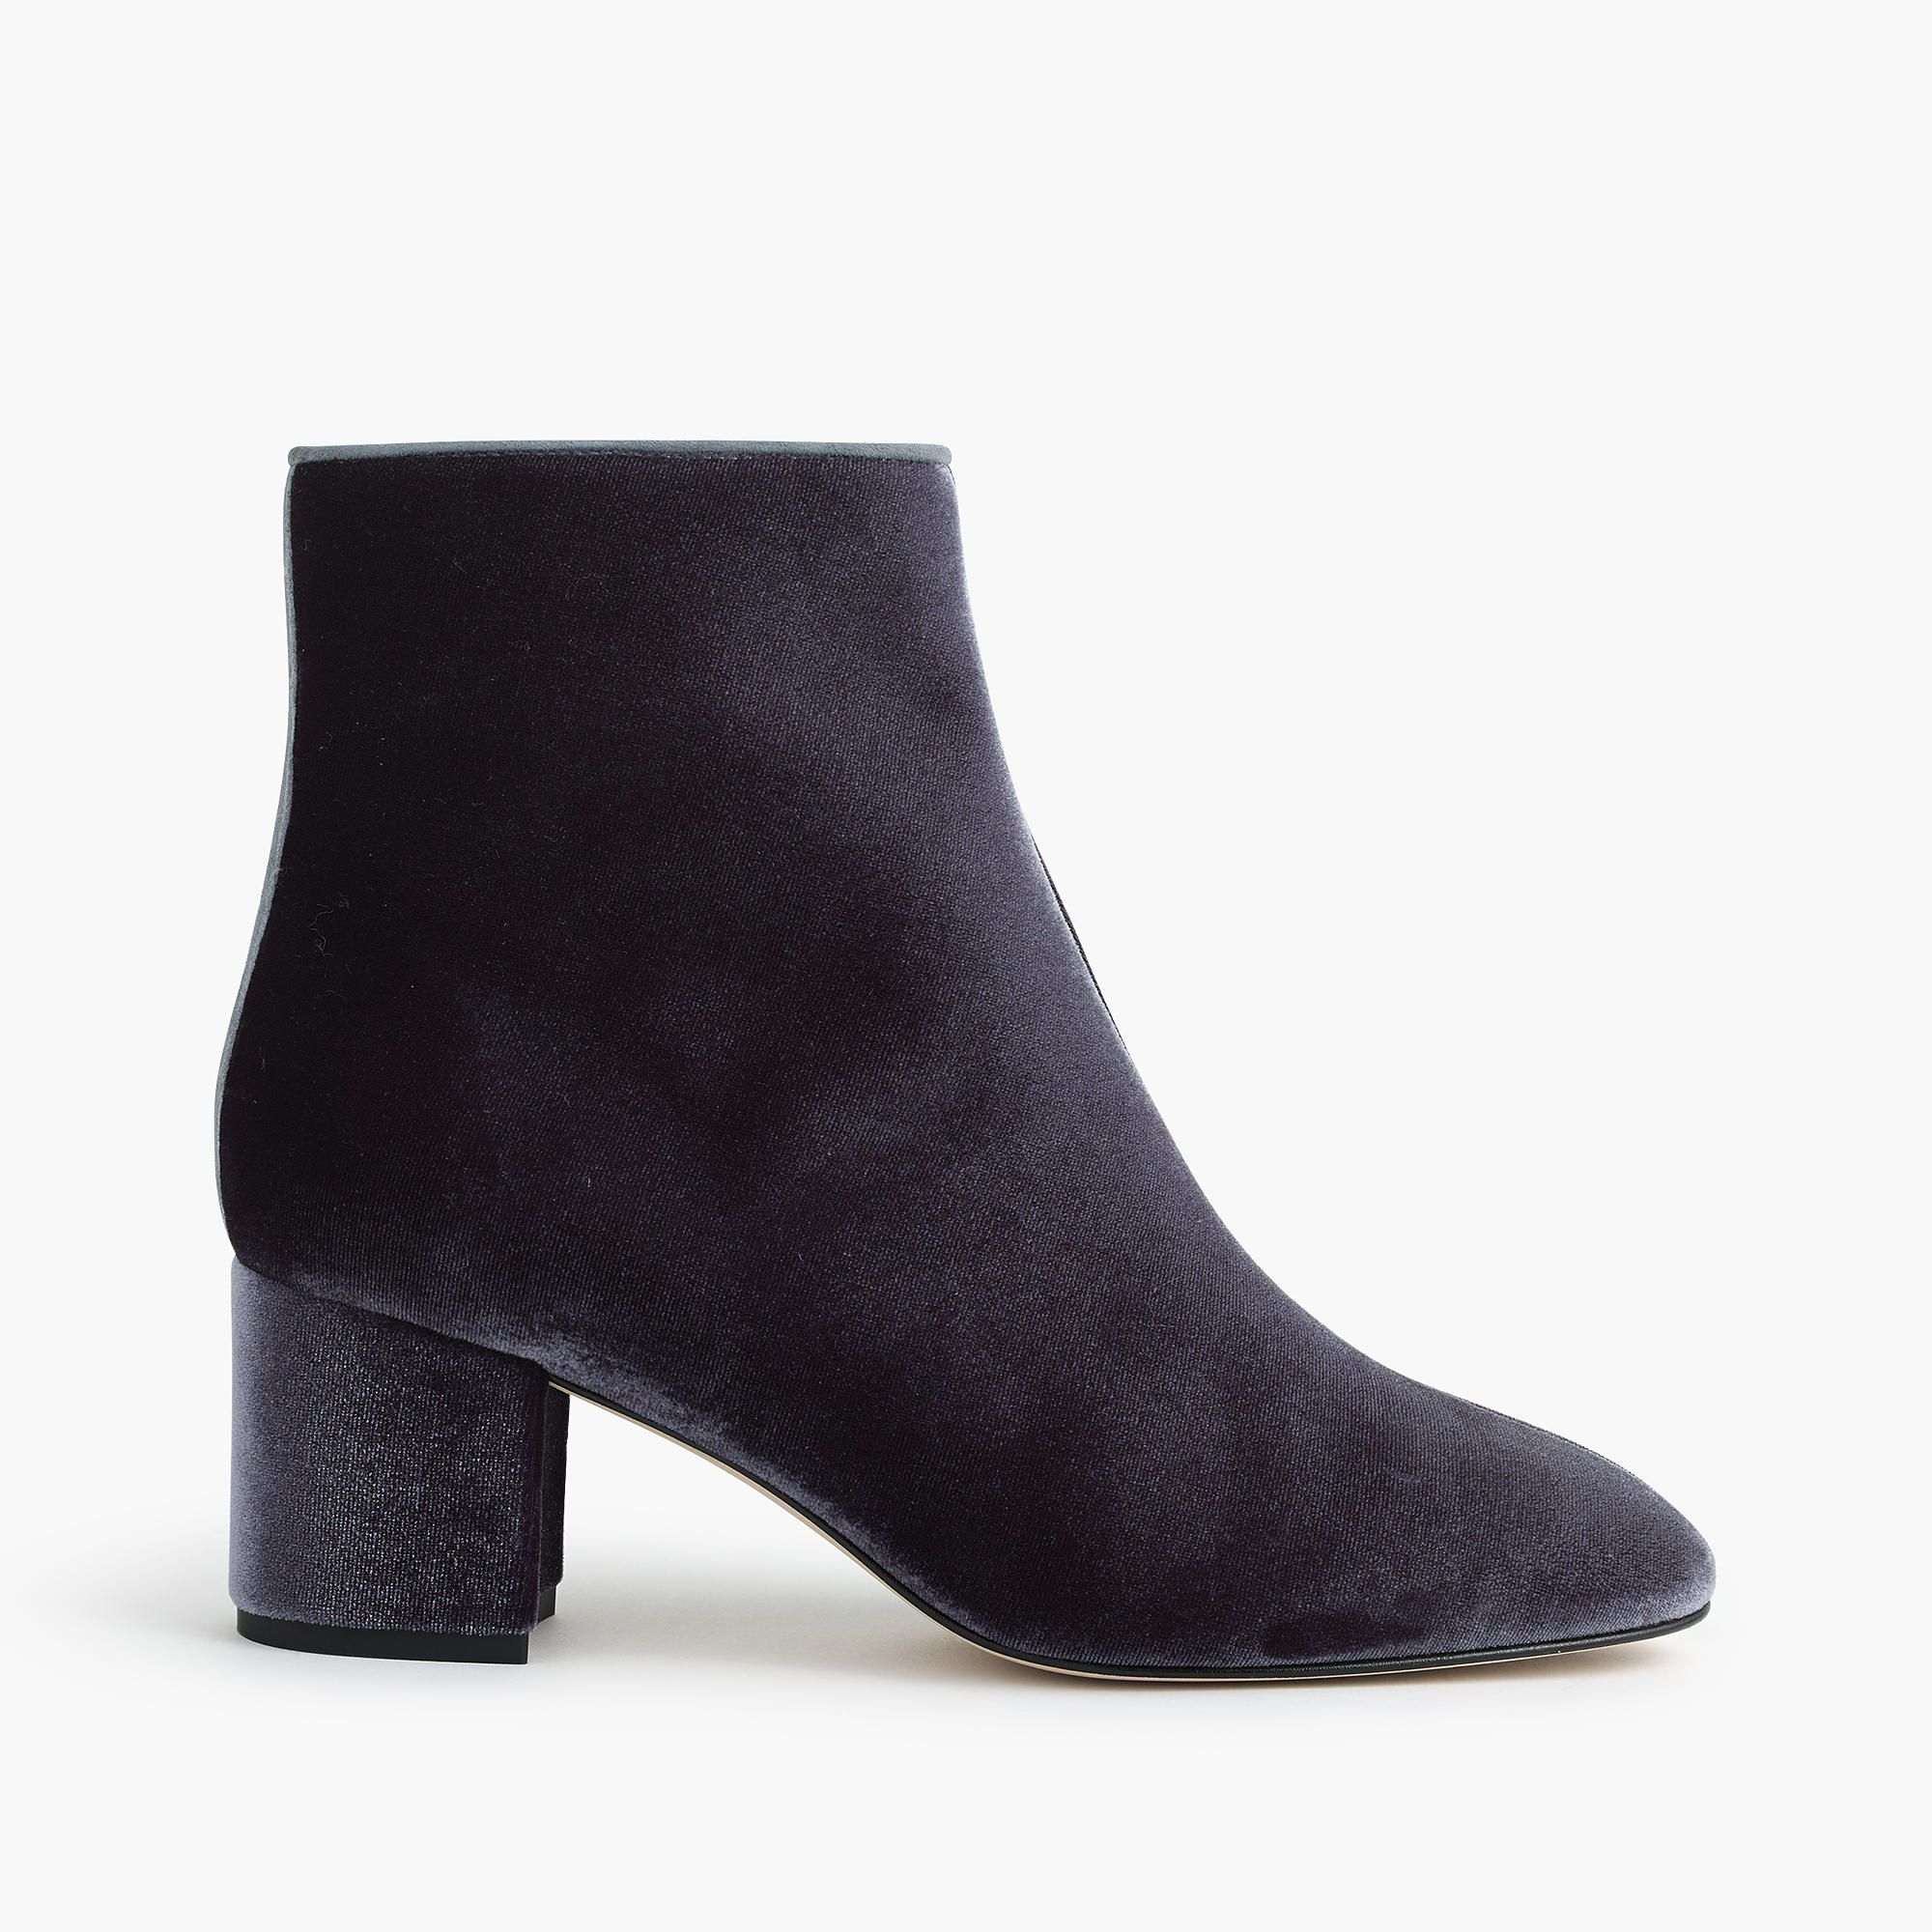 517102f6fb6 PSA  It s officially ankle boot season. Cue the perfect ankle boot in a  luxurious velvet with a walkable 2 1 2-inch heel. Poly cotton spandex upper.